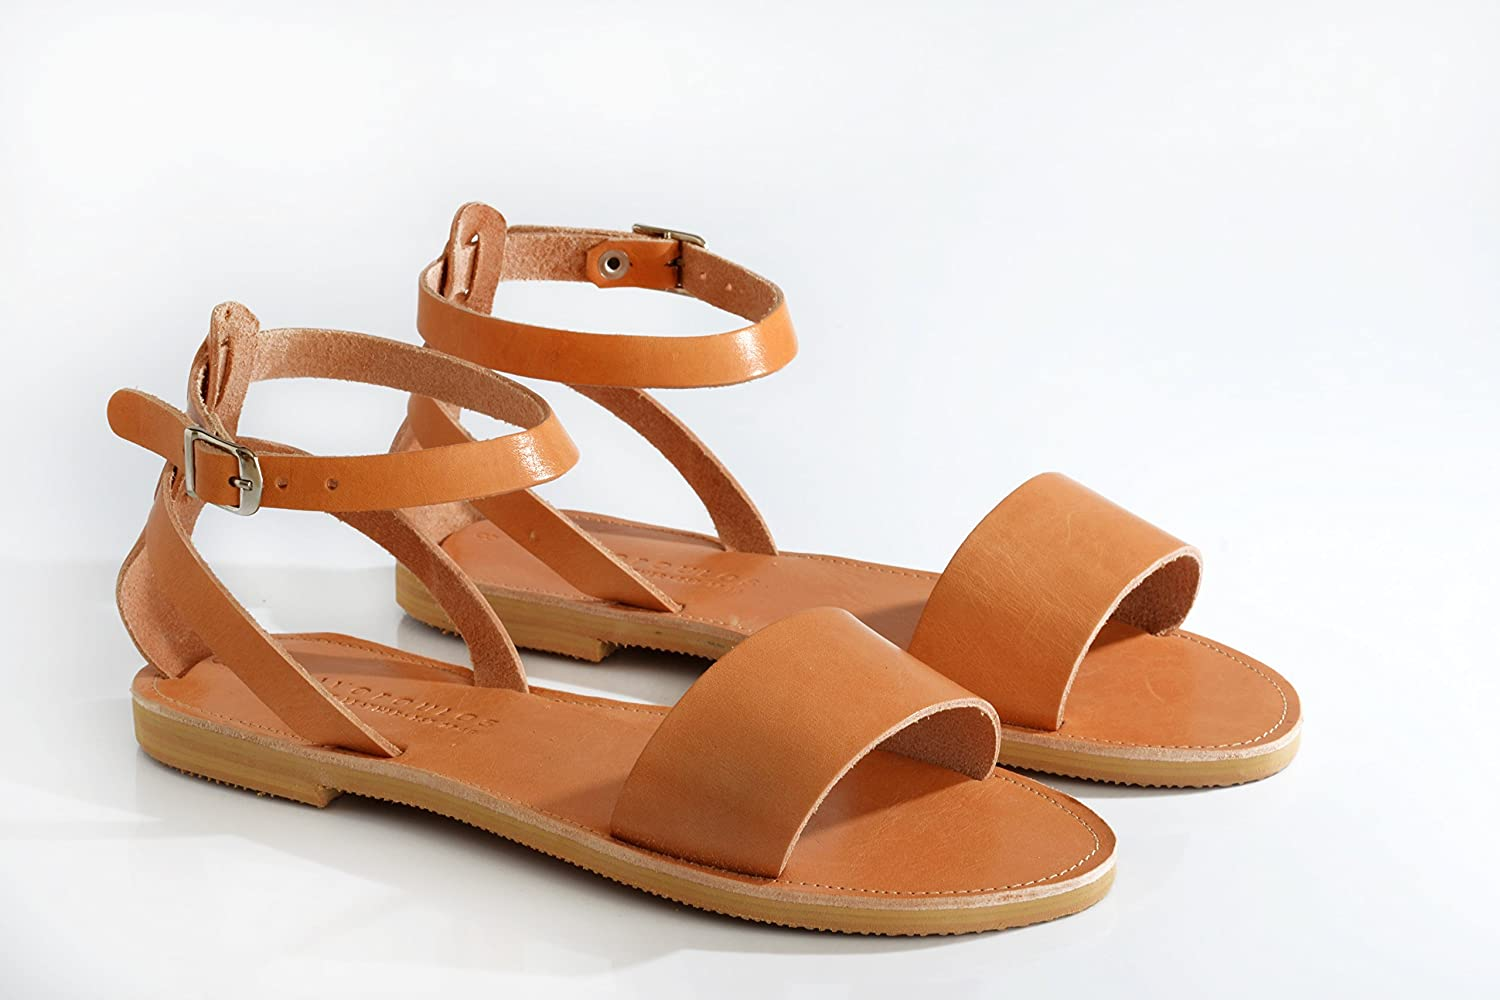 8c2cfa48091 Amazon.com  Greek sandals